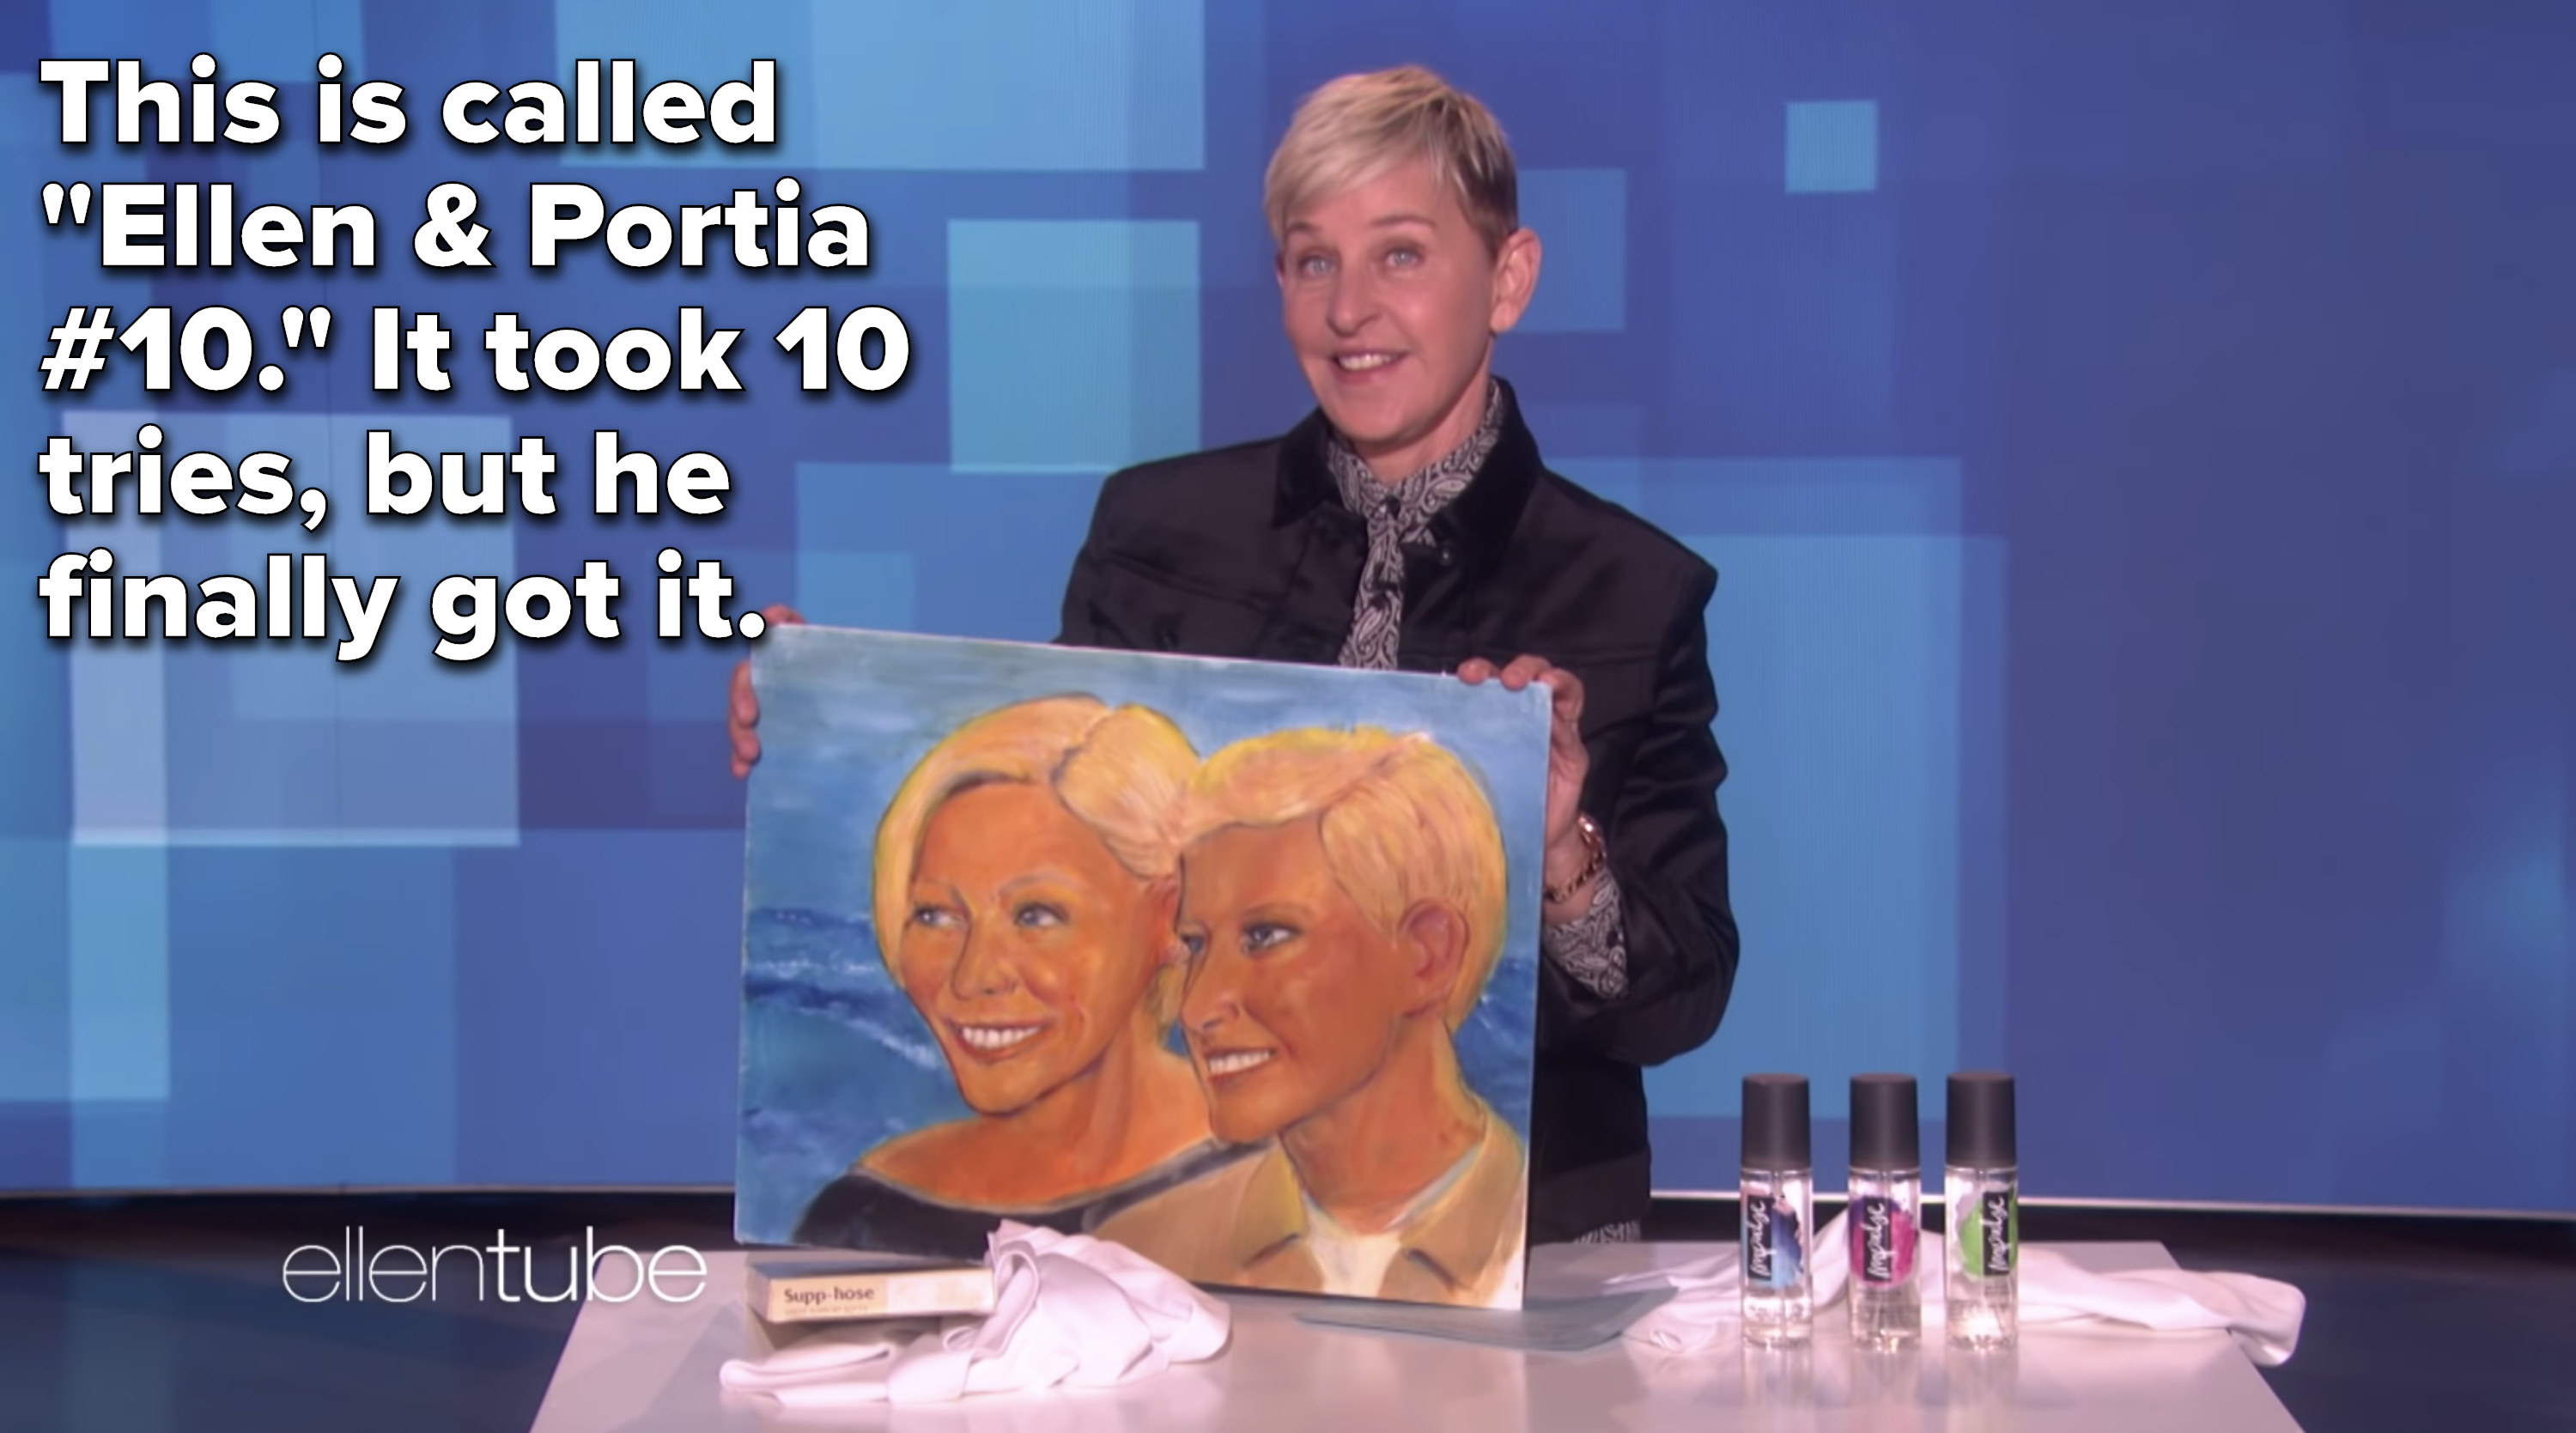 """She said, """"This is called 'Ellen & Portia #10.' It took 10 tries, but he finally got it."""""""